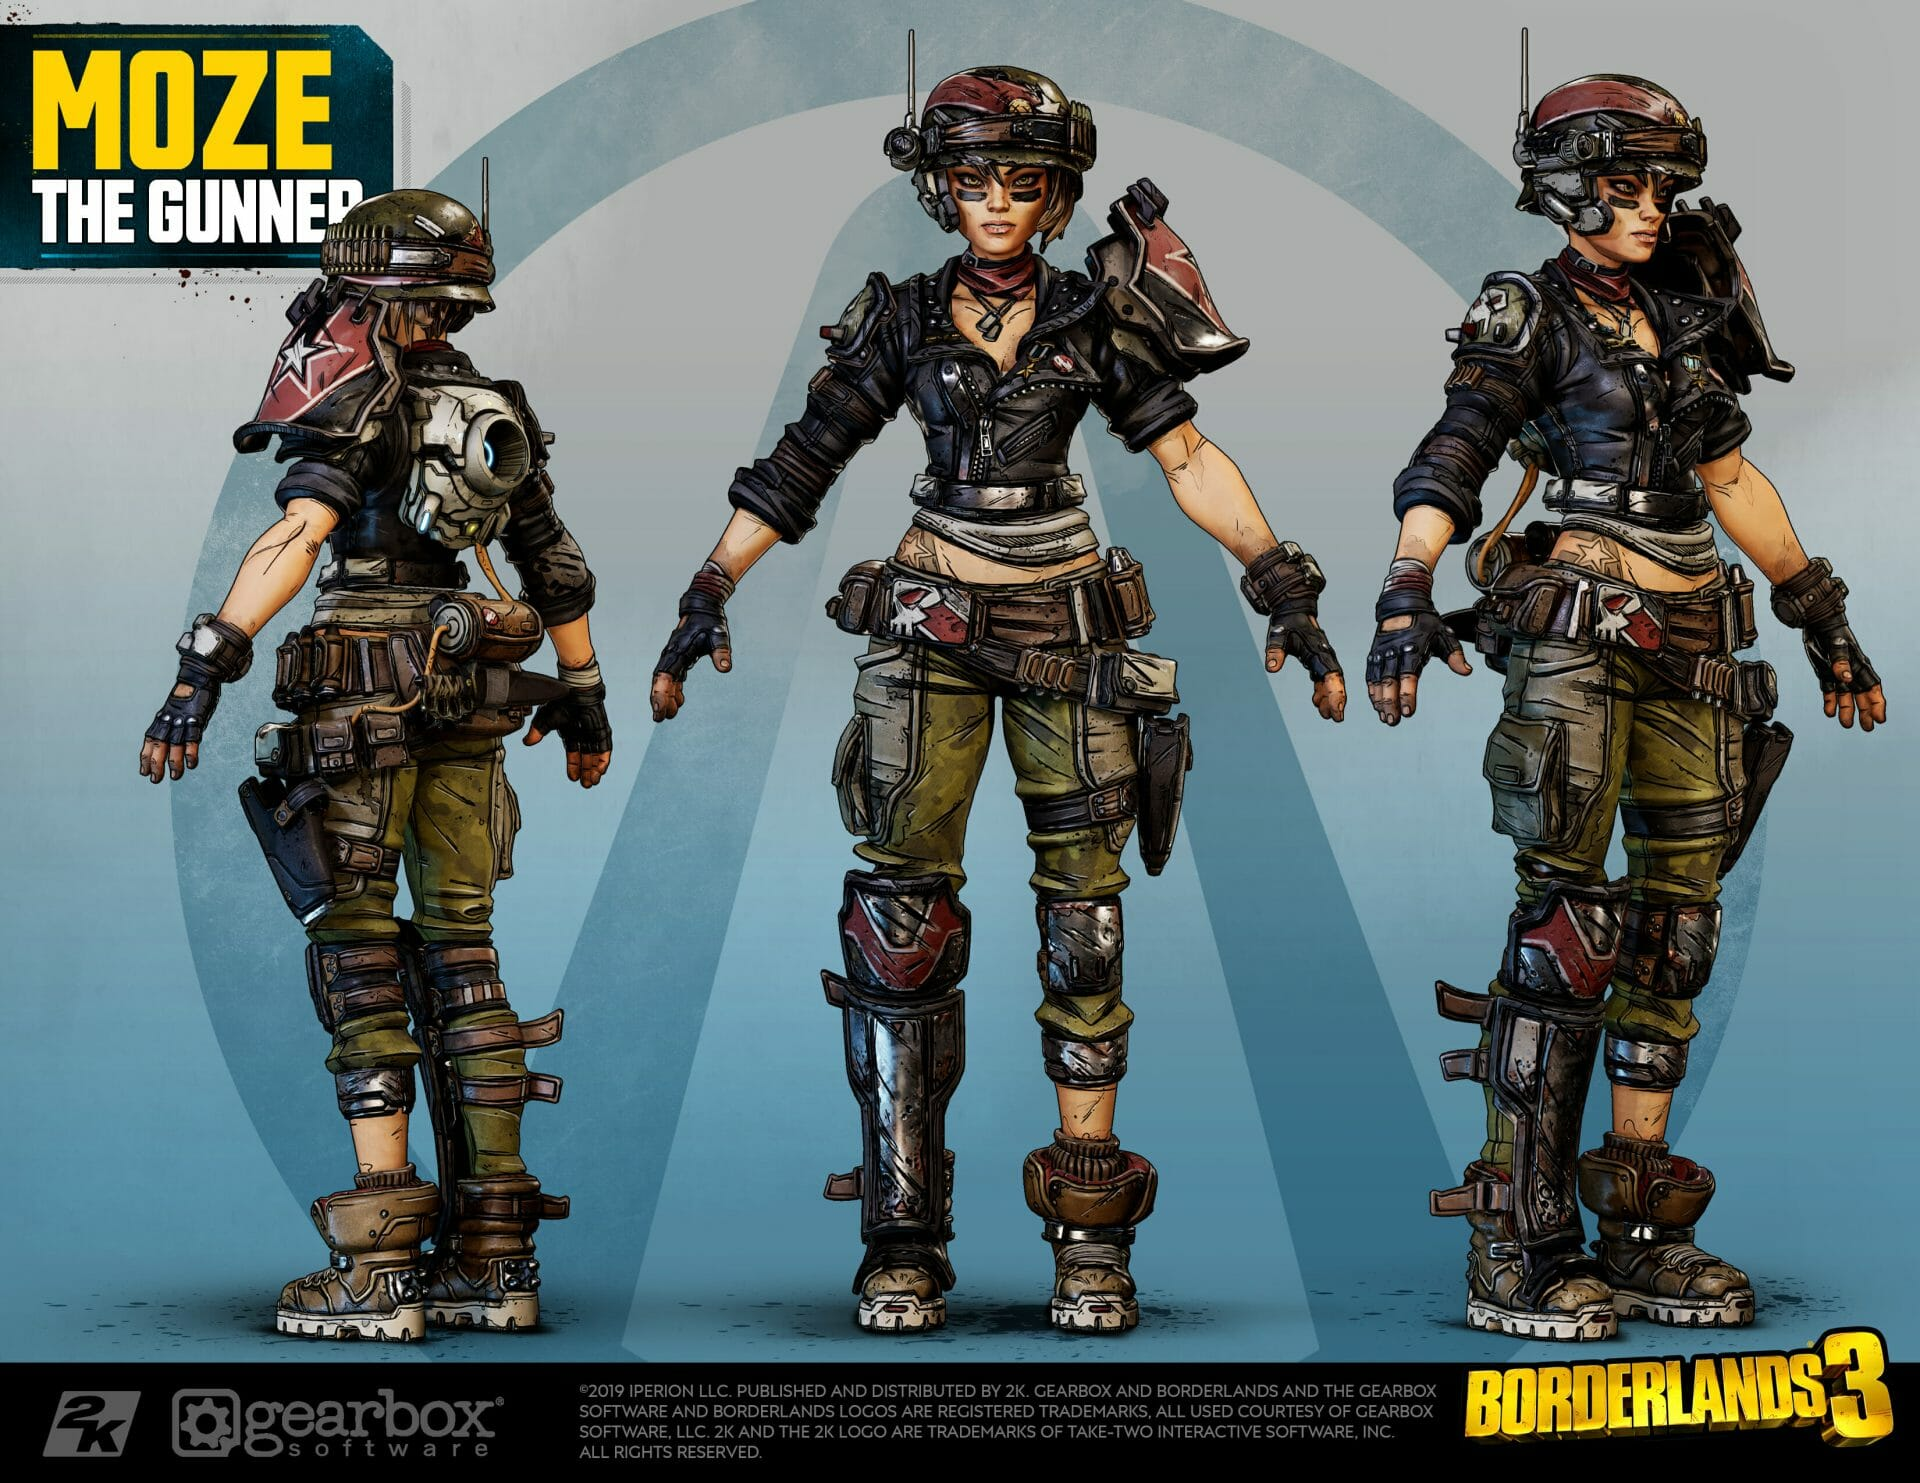 Moze, The Gunner, Borderlands 3